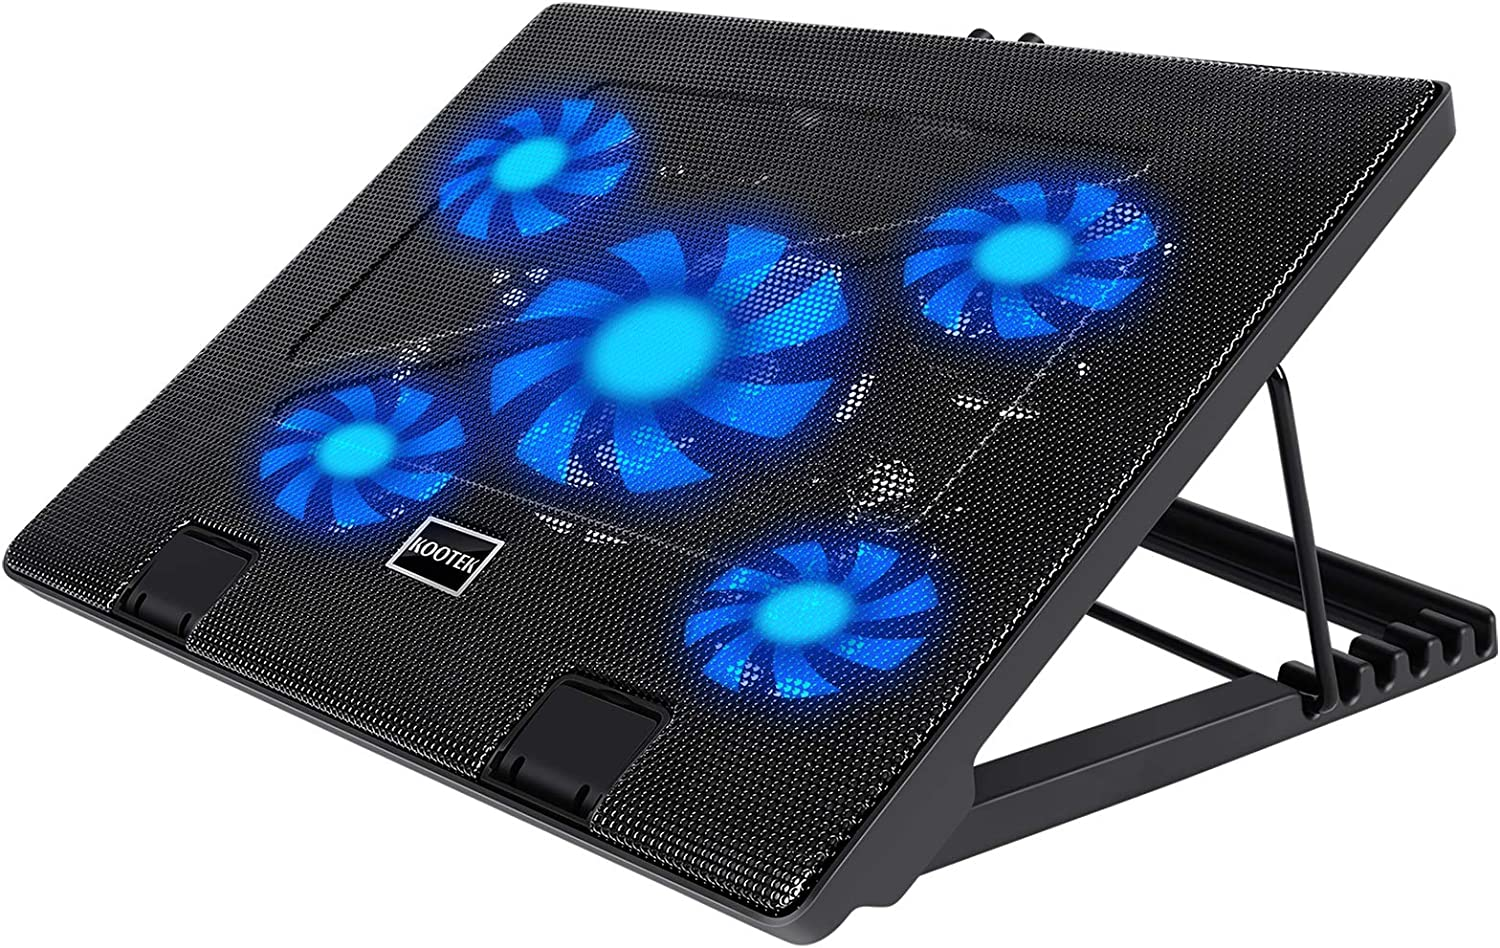 """Kootek Laptop Cooling Pad 12""""-17"""" Cooler Pad Chill Mat 5 Quiet Fans LED Lights and 2 USB 2.0 Ports Adjustable Mounts Laptop Stand Height Angle, Blue"""